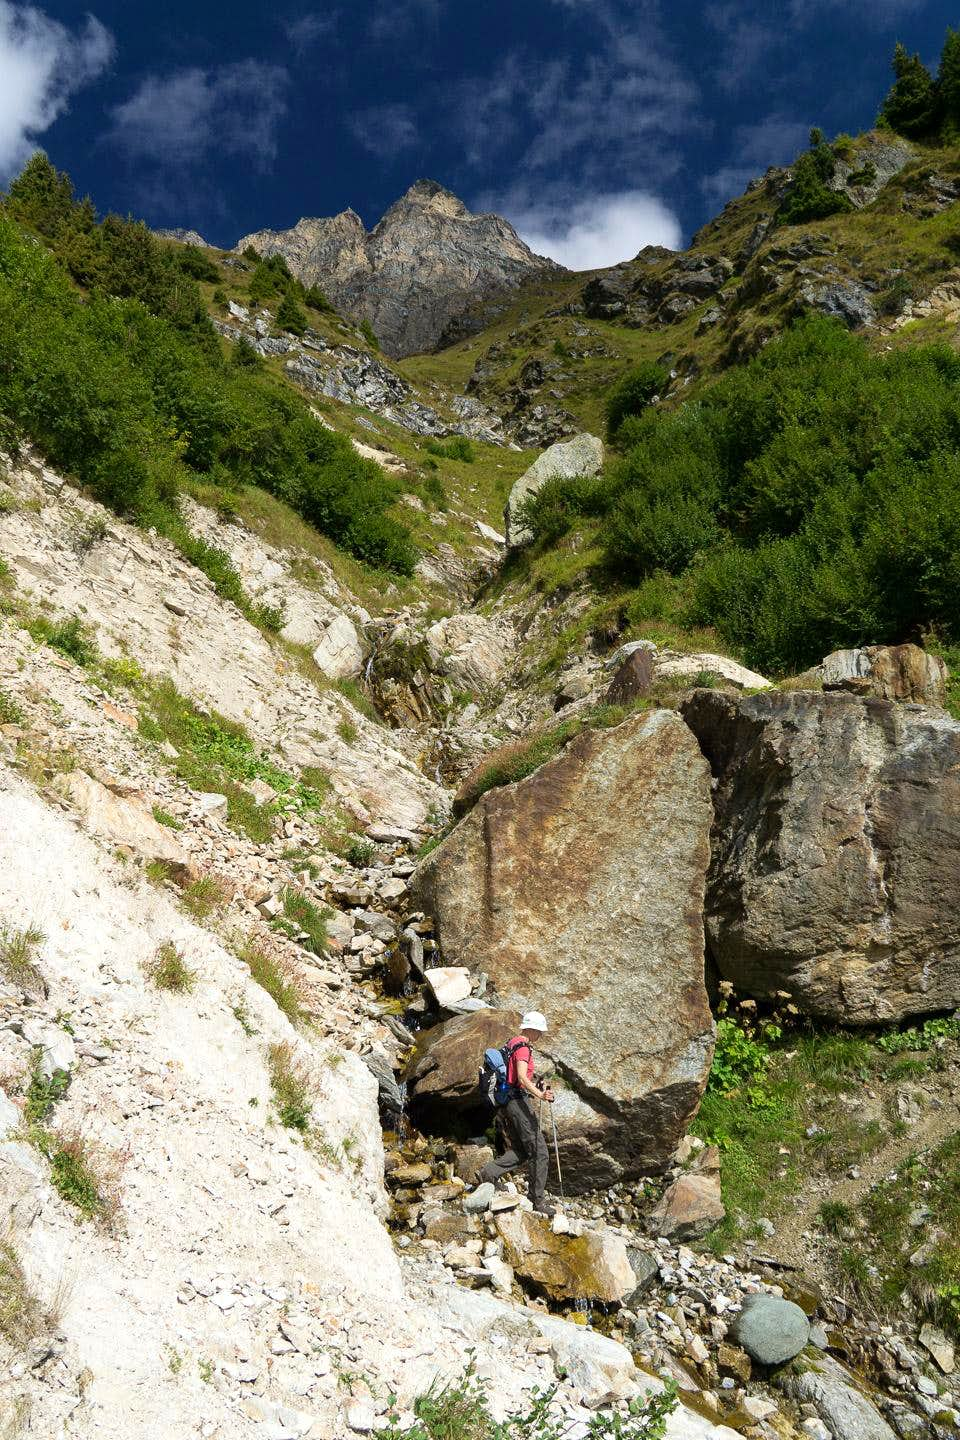 Crossing another of the steep gullies